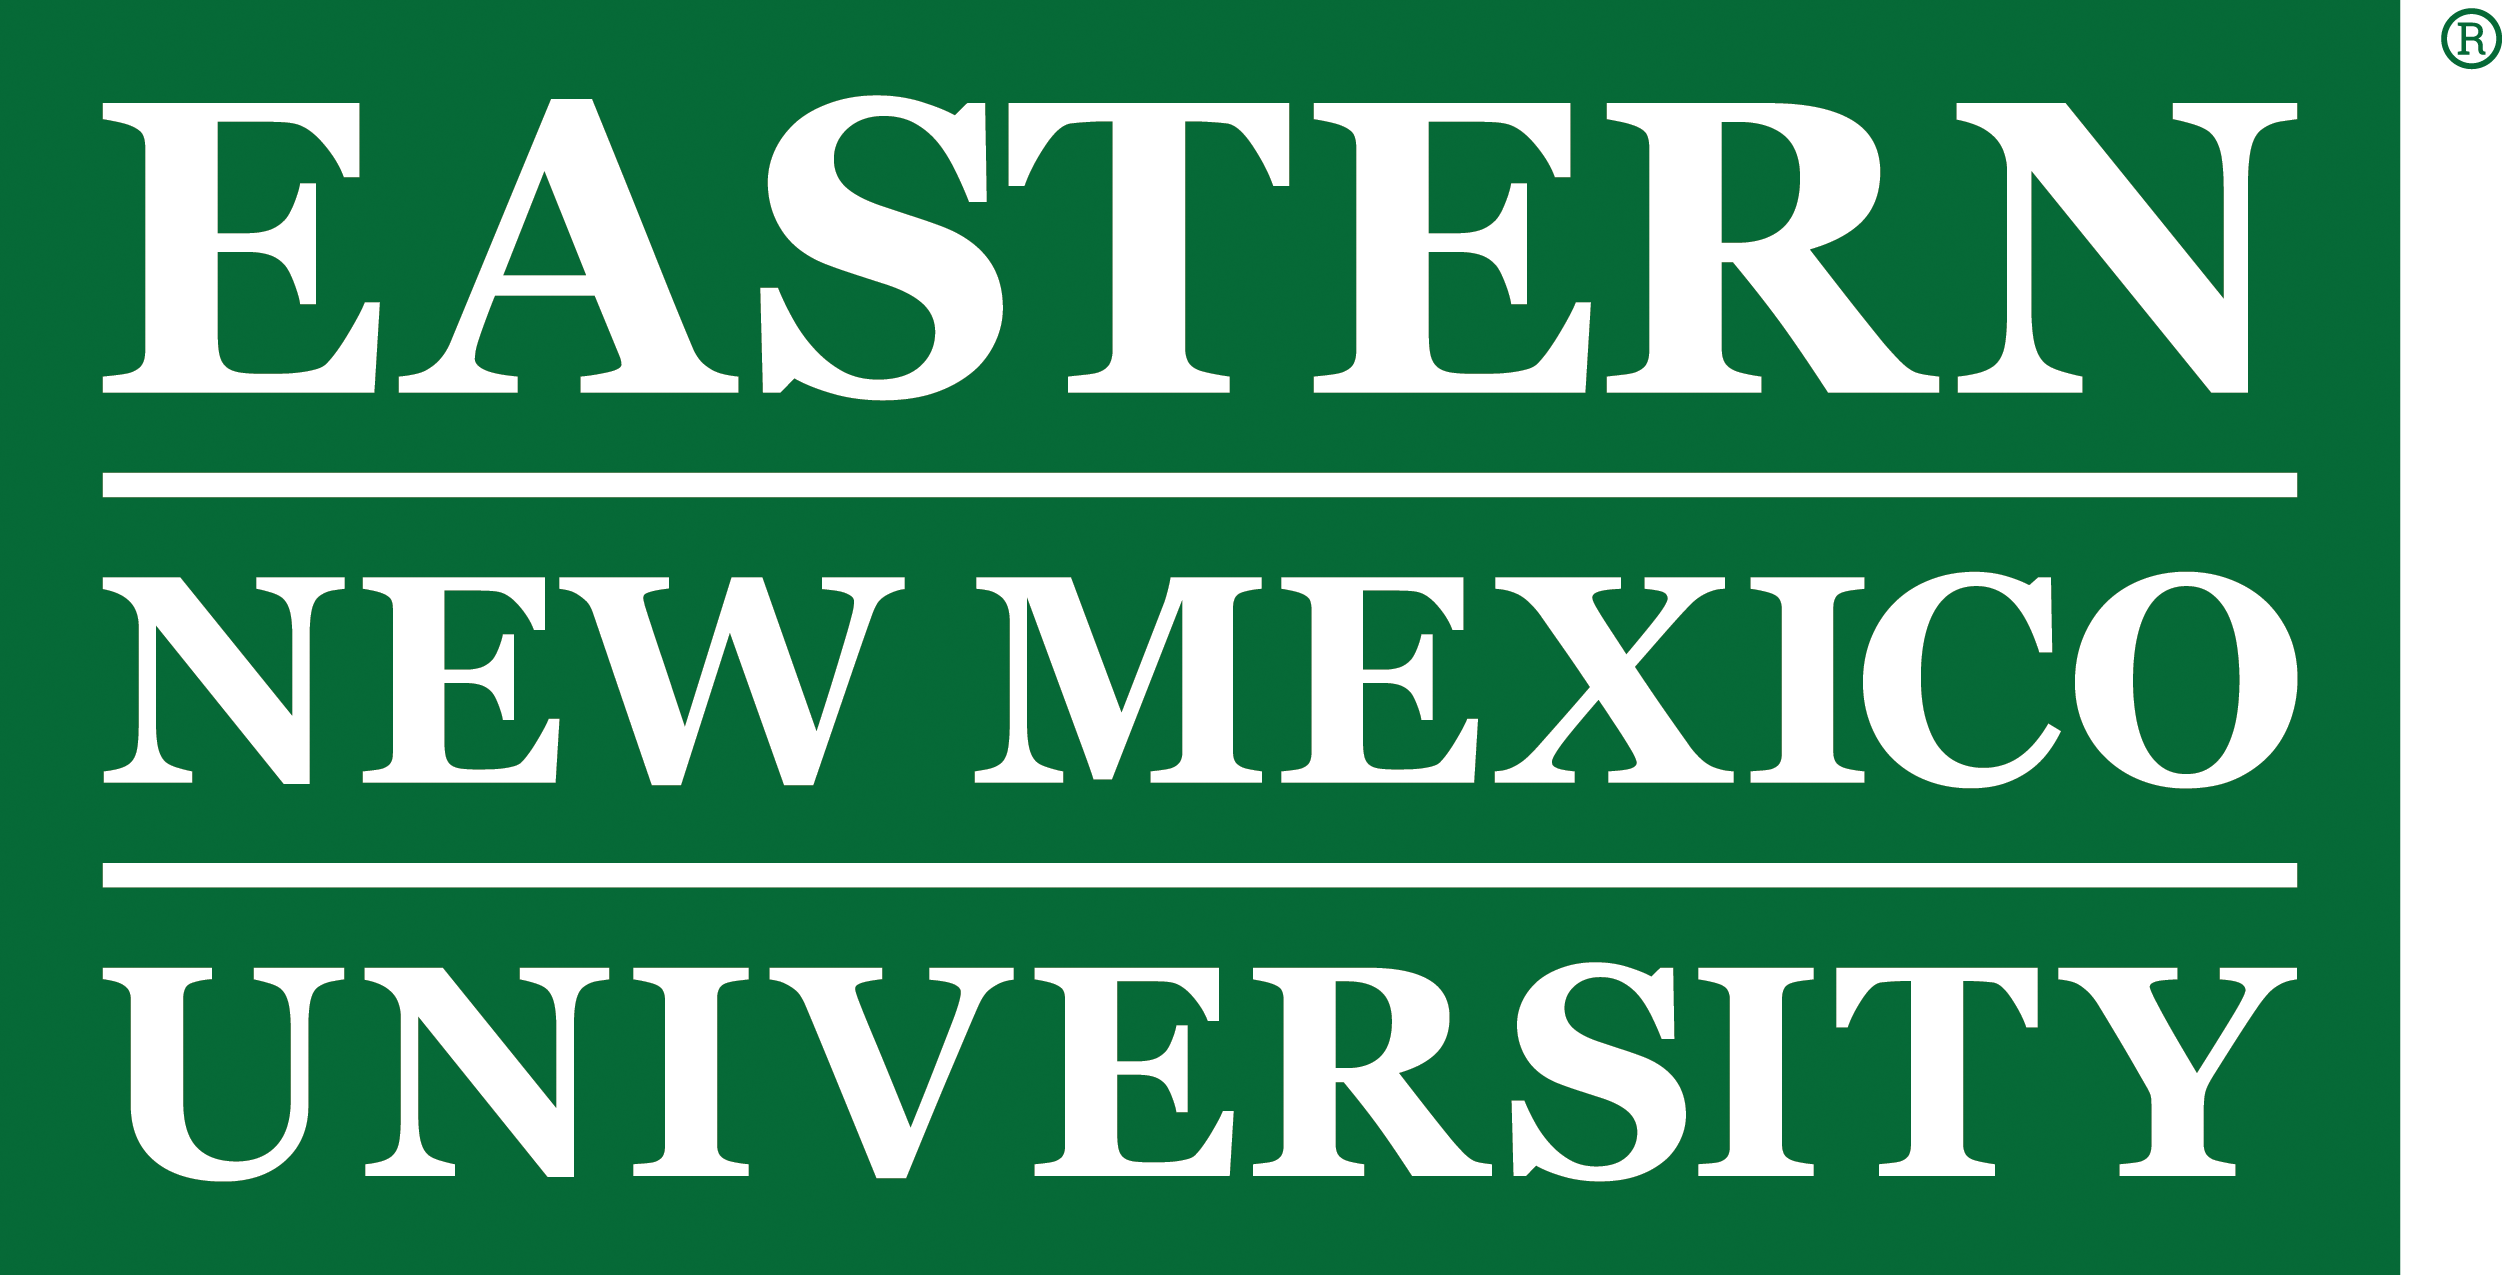 Enmu wordmark green box rgb png